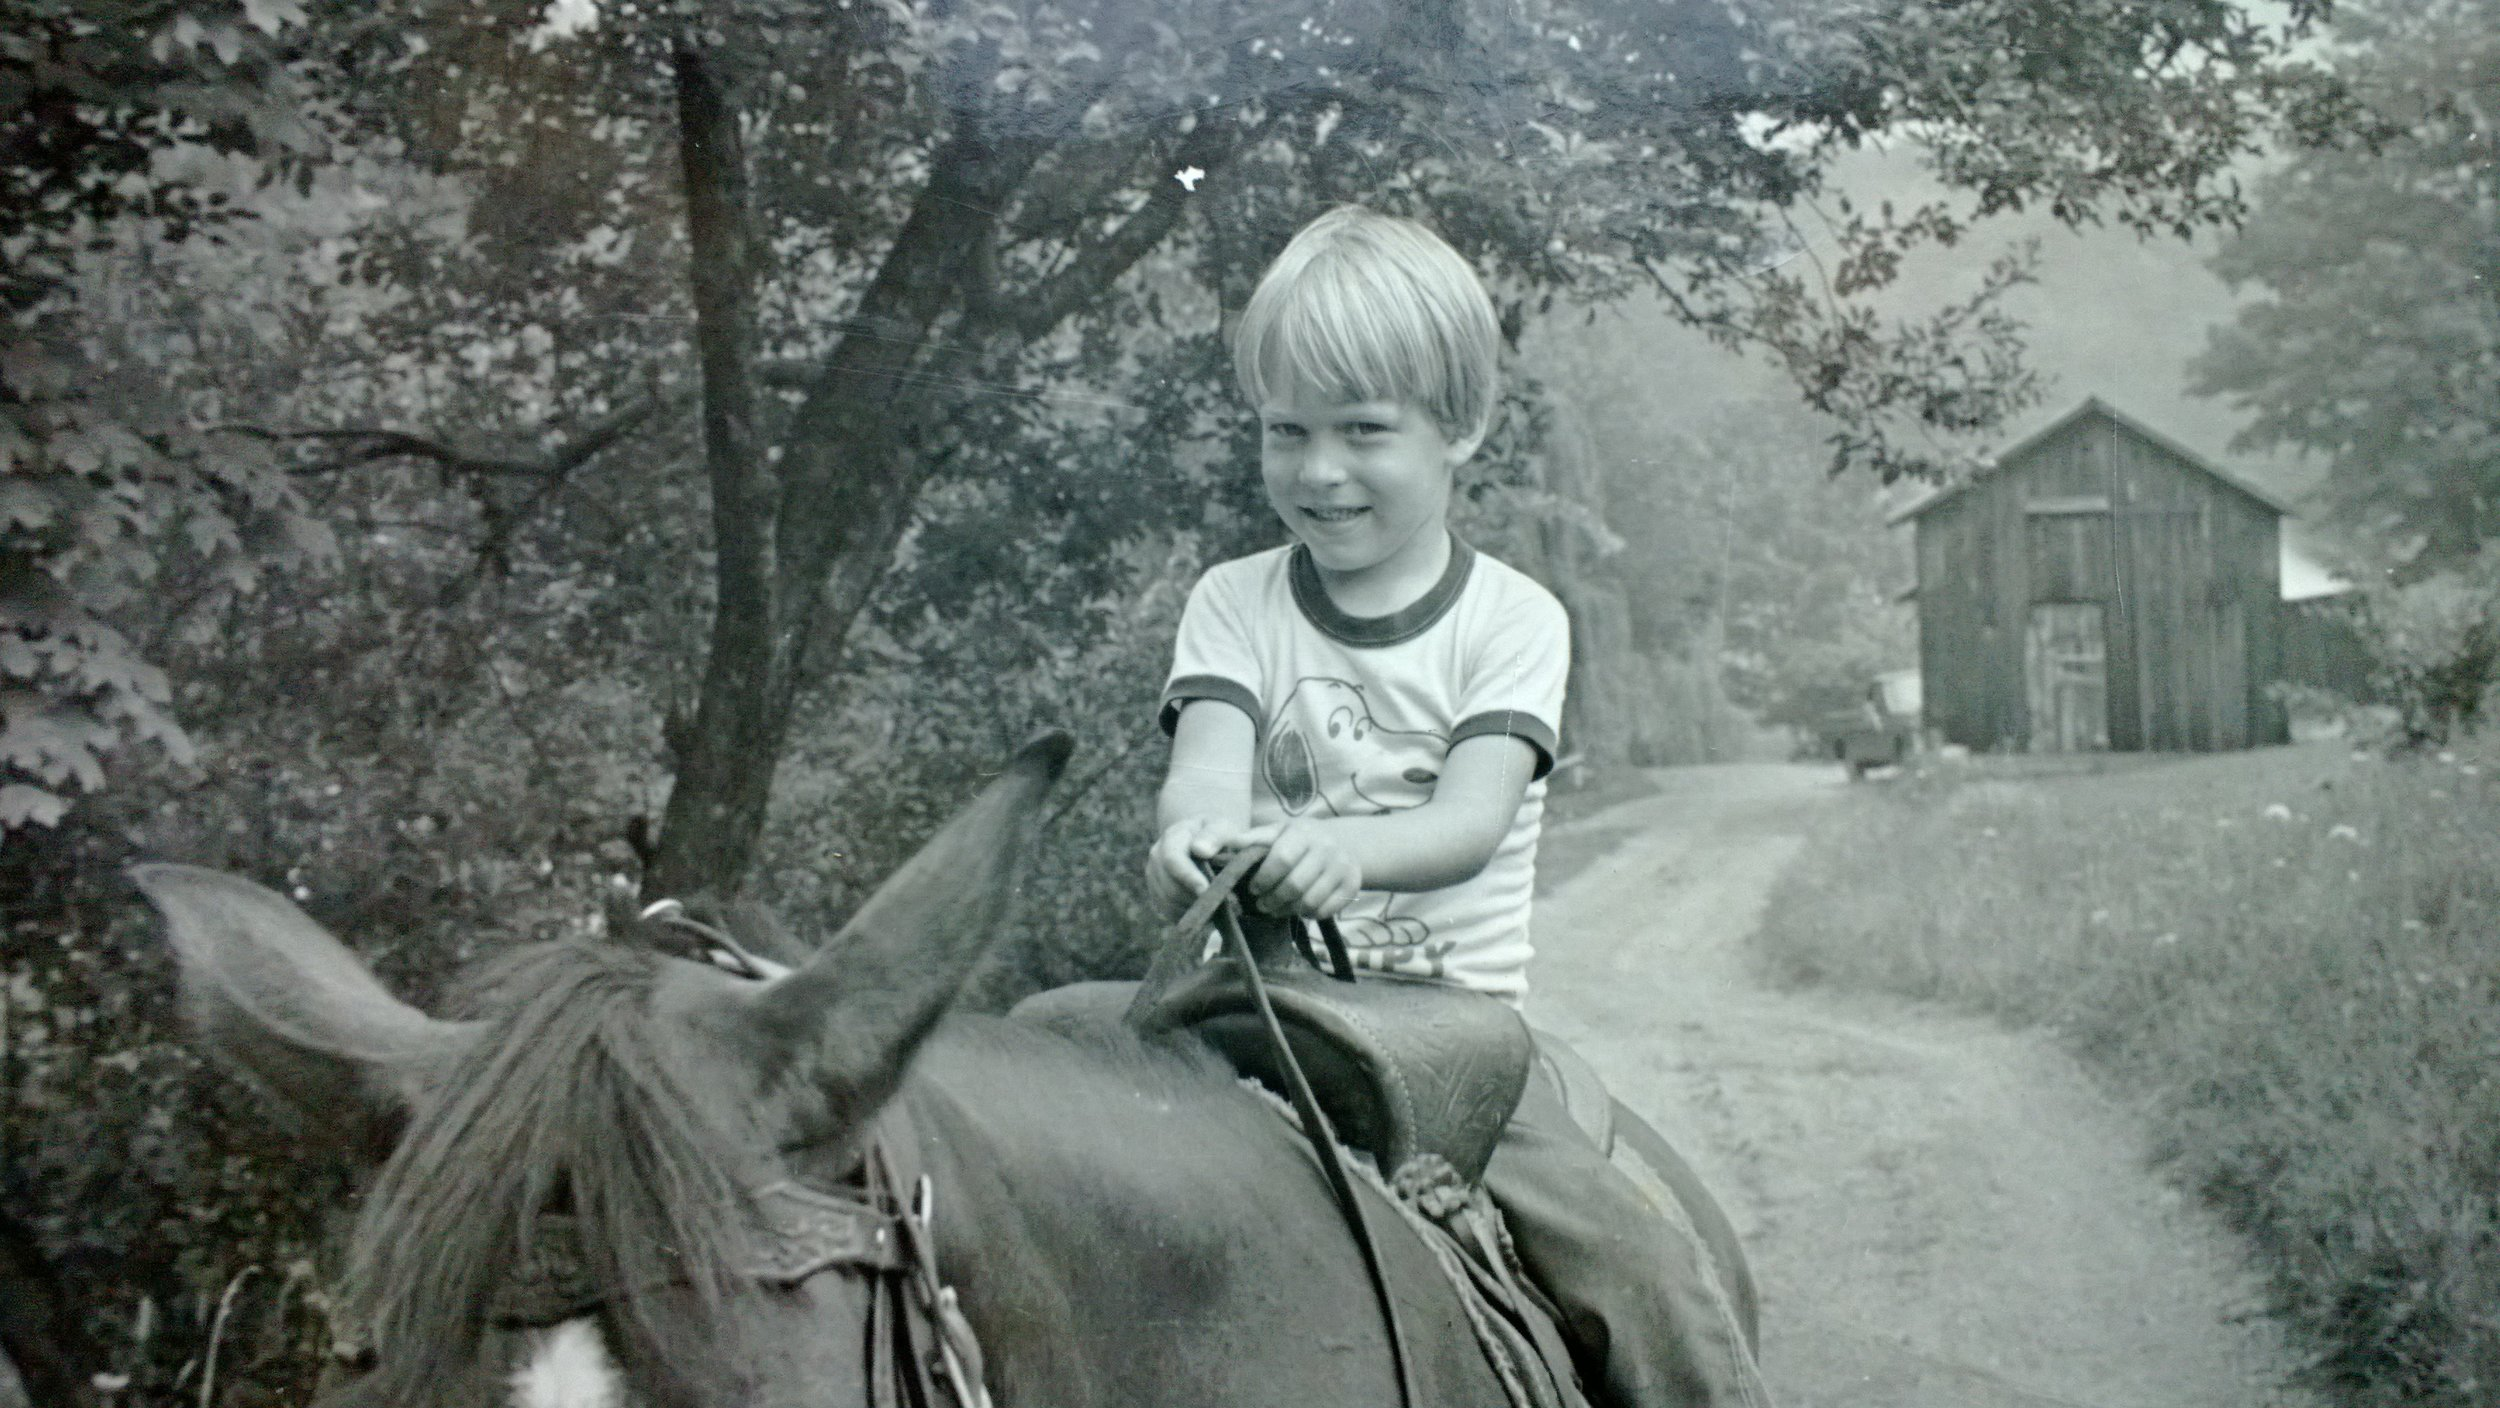 Toby riding a family friend's horse near his childhood home in Pennsylvania.